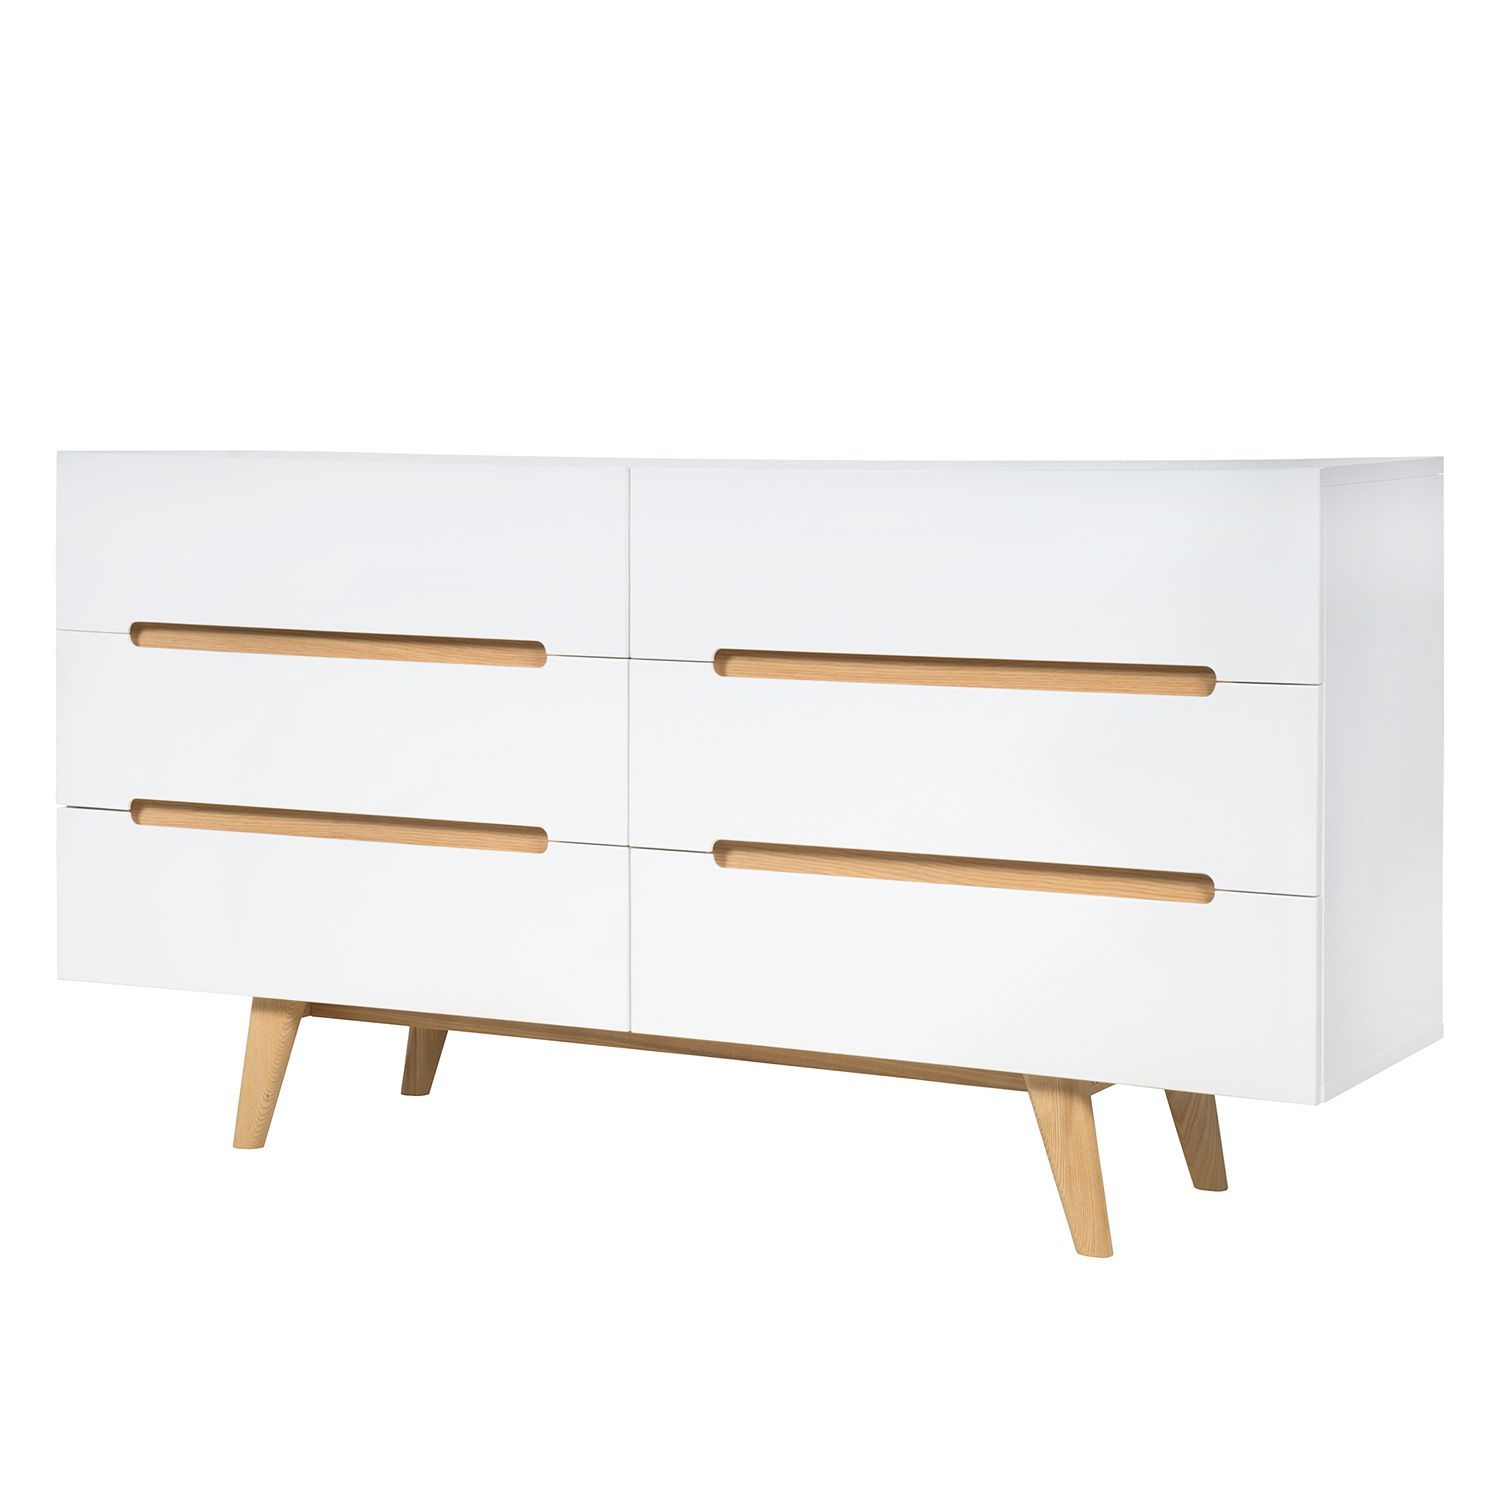 sideboard allium i esche teilmassiv hochglanz wei esche g nstig online kaufen. Black Bedroom Furniture Sets. Home Design Ideas